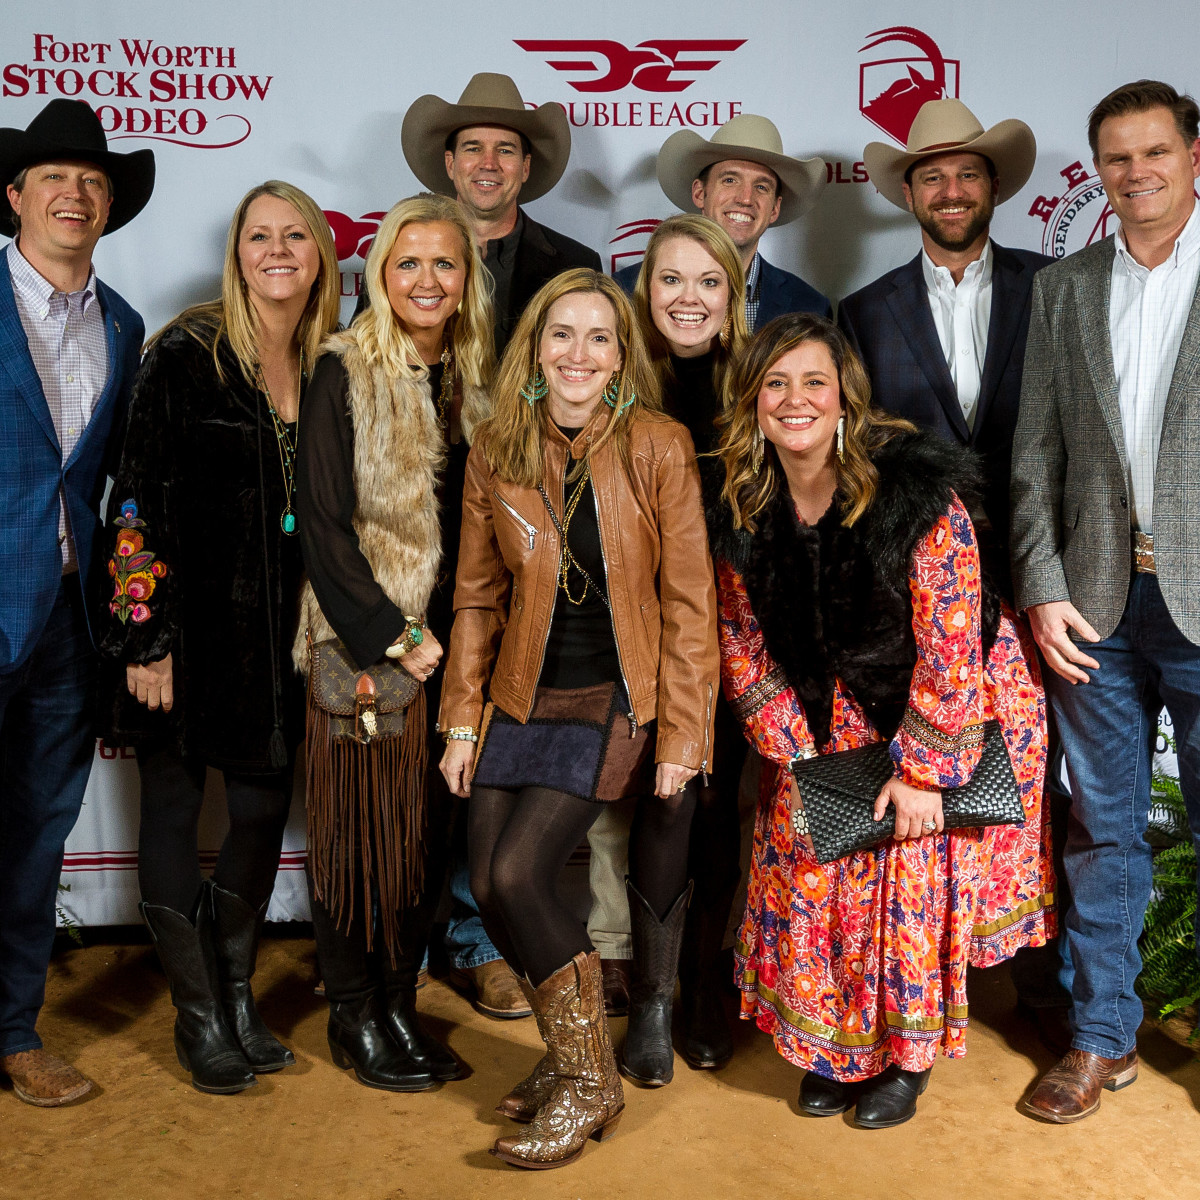 Fort Worth Stock Show Grand Entry Gala 2019 group photo